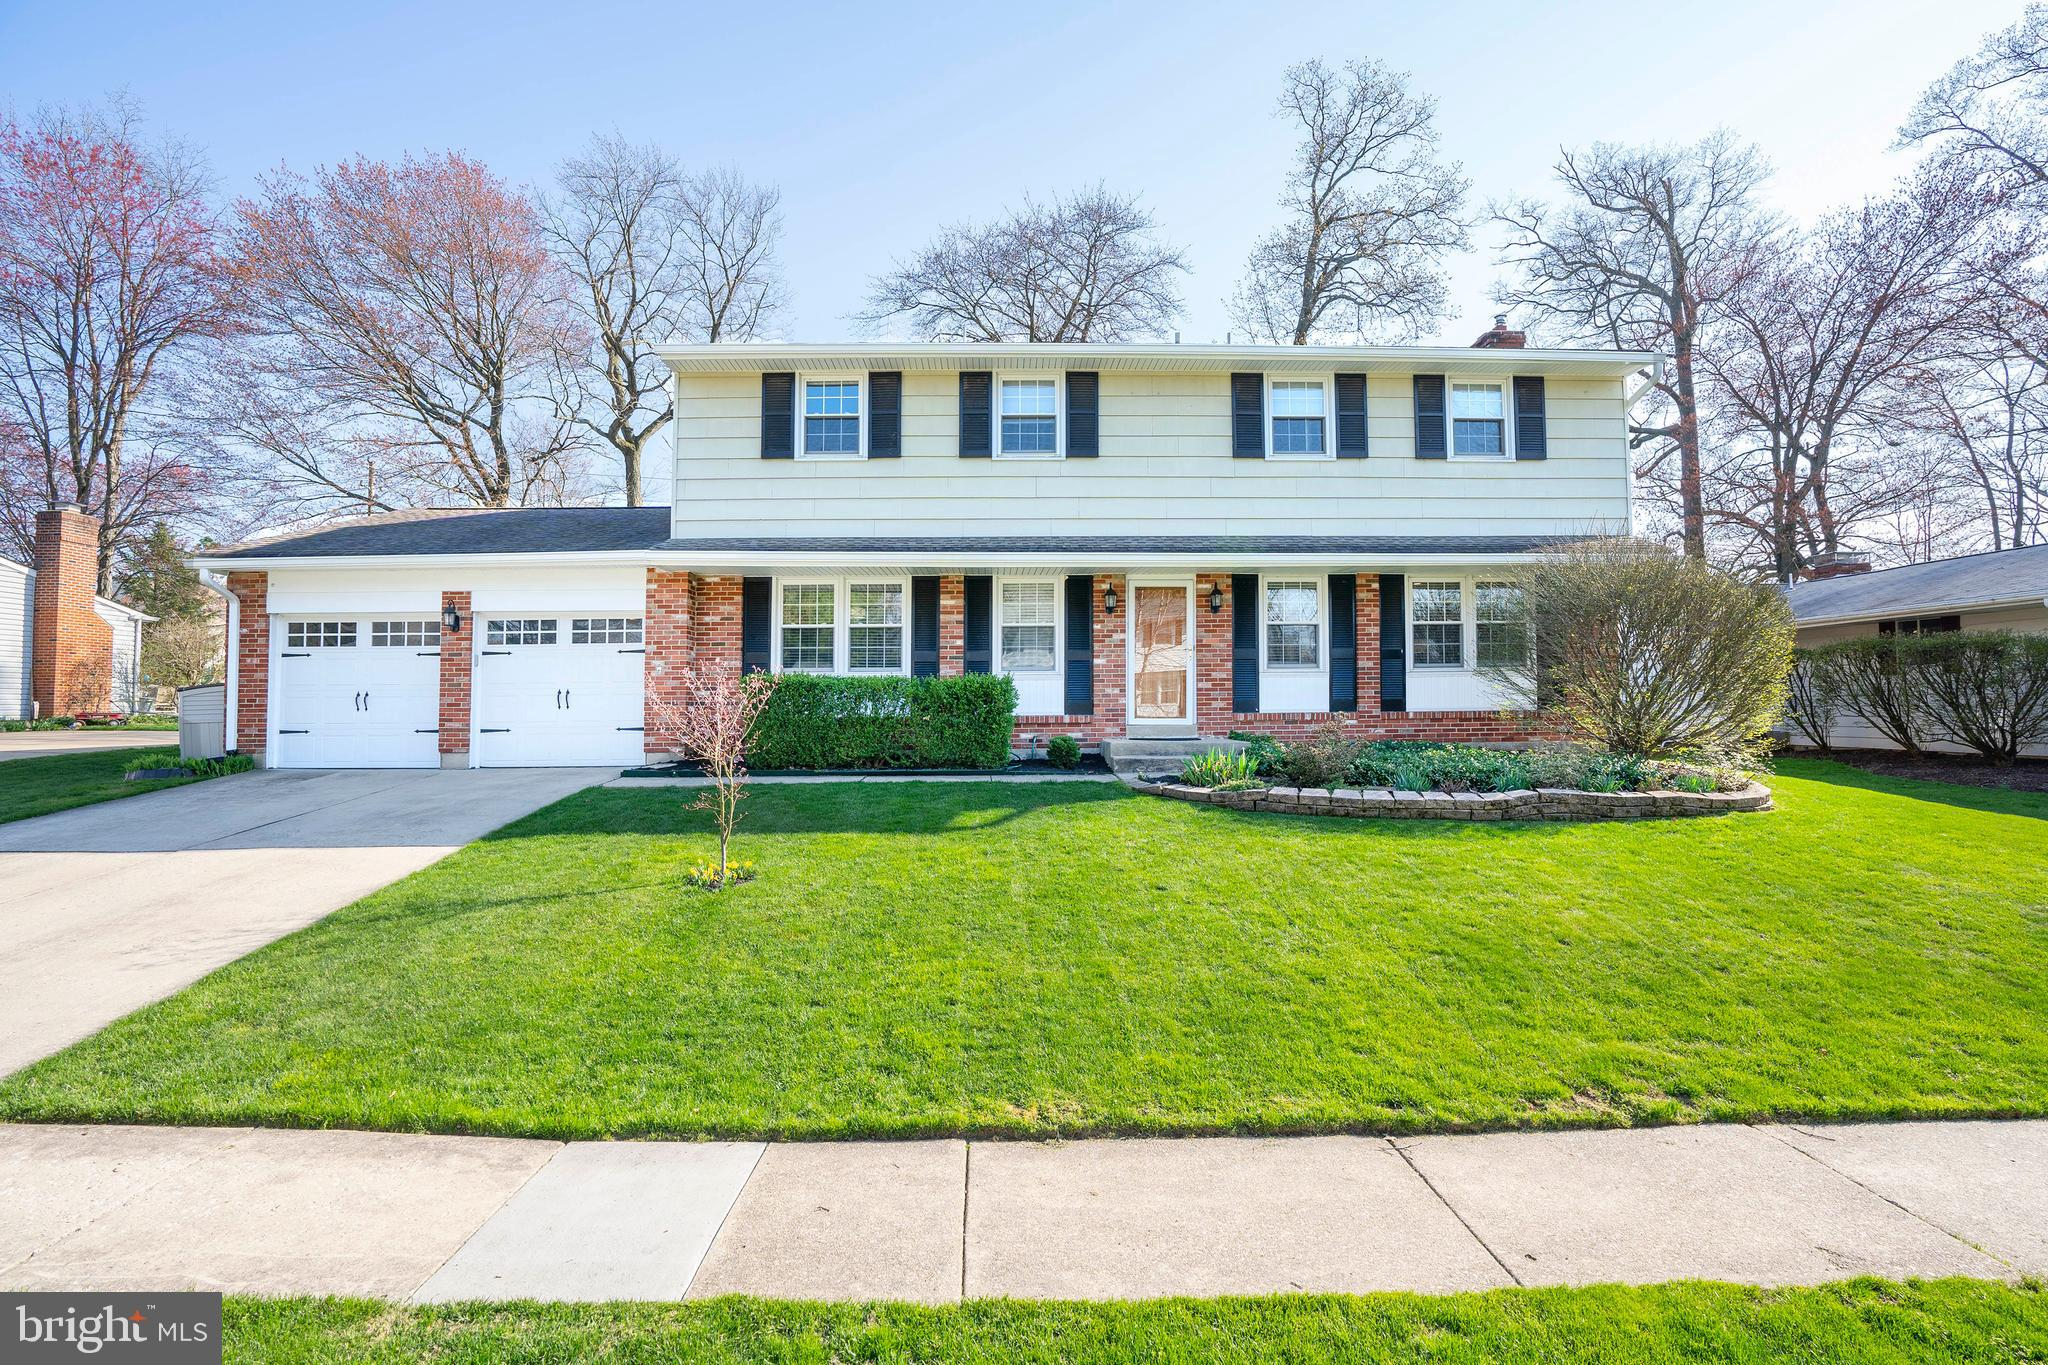 Welcome Home! 3320 Morningside Drive is a North Wilmington 4-bedroom, 2.5-bathroom Colonial in the e